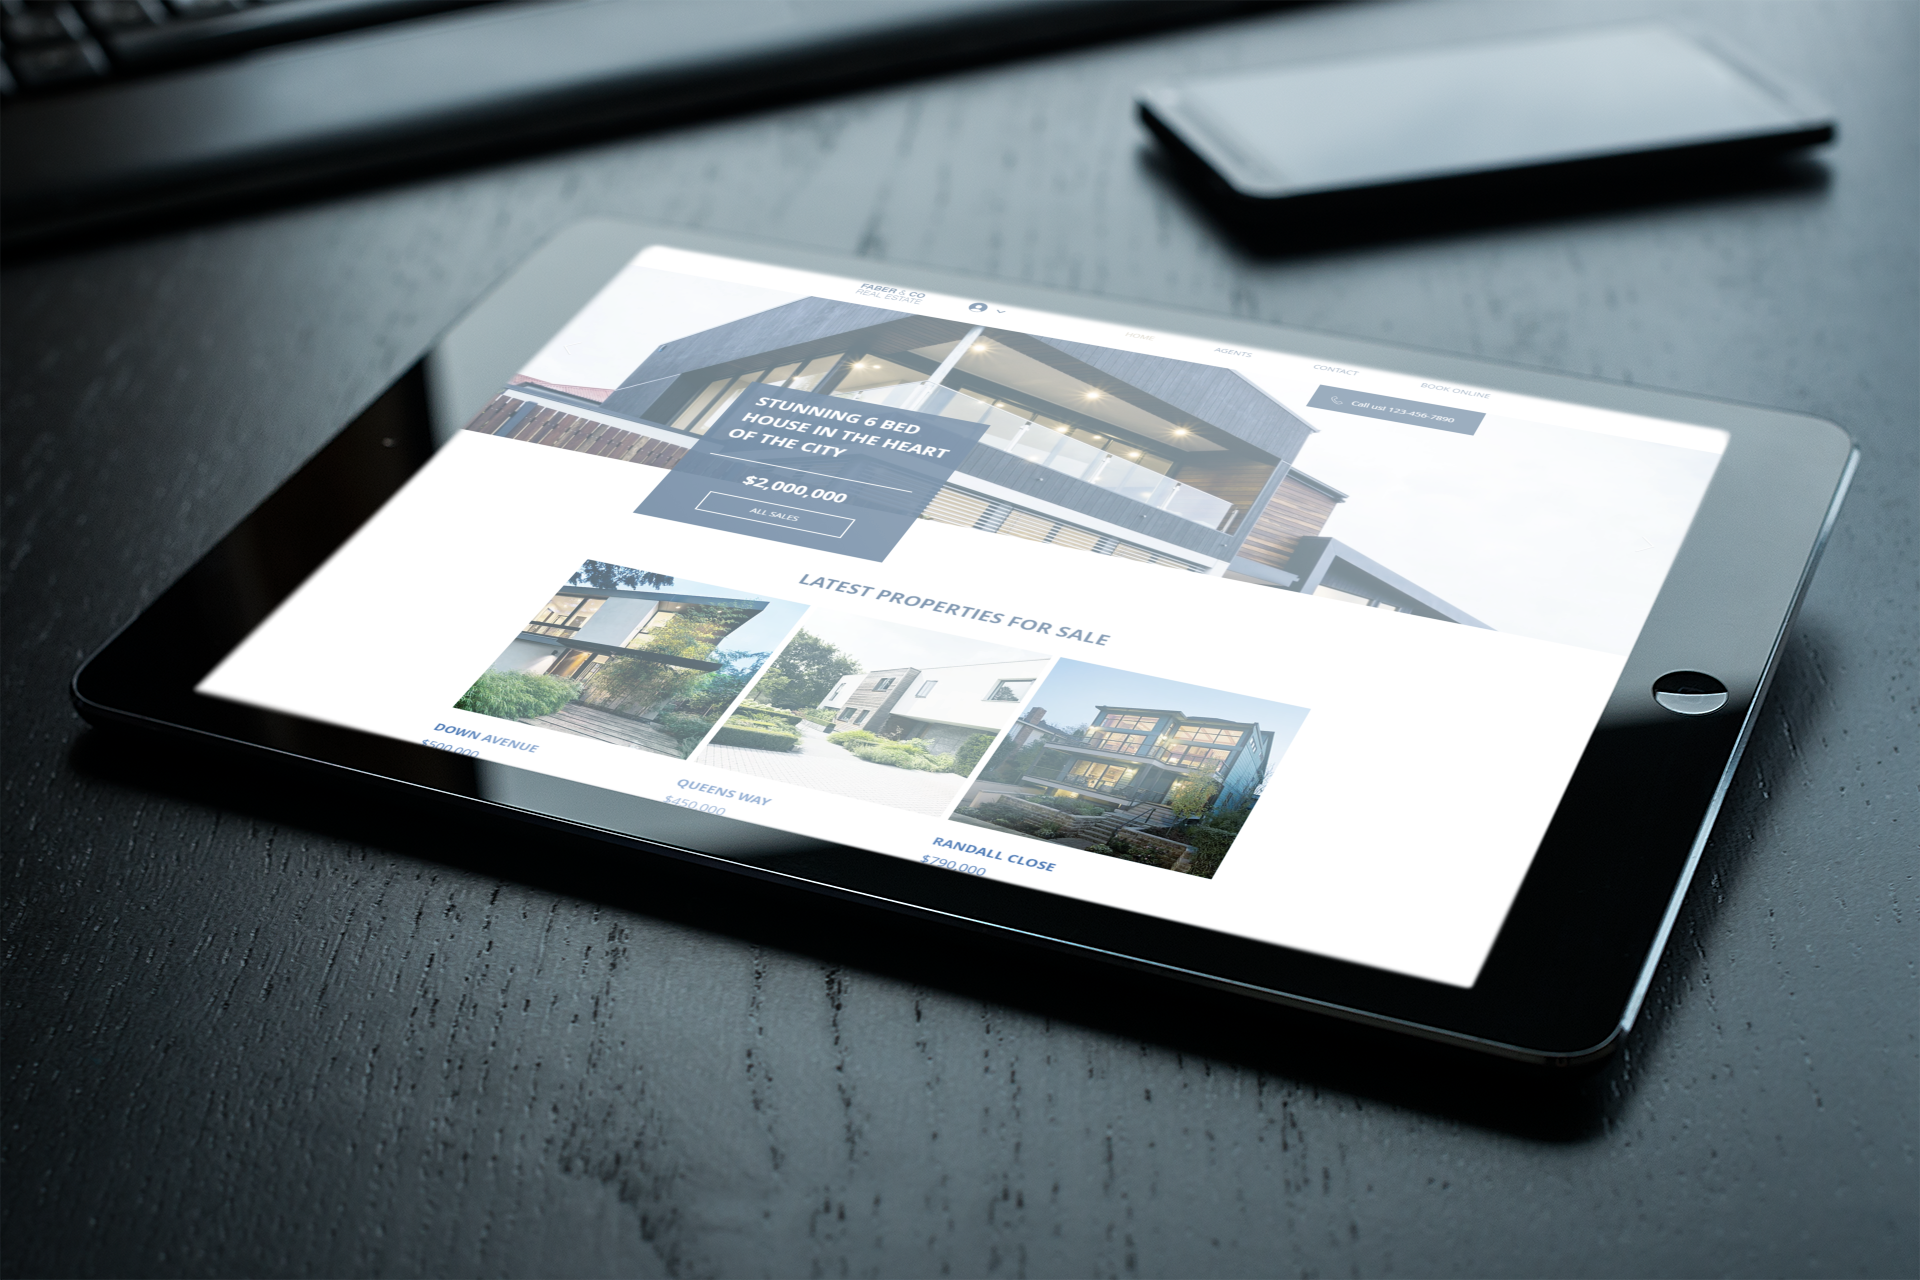 mockup-of-an-ipad-in-landscape-position-